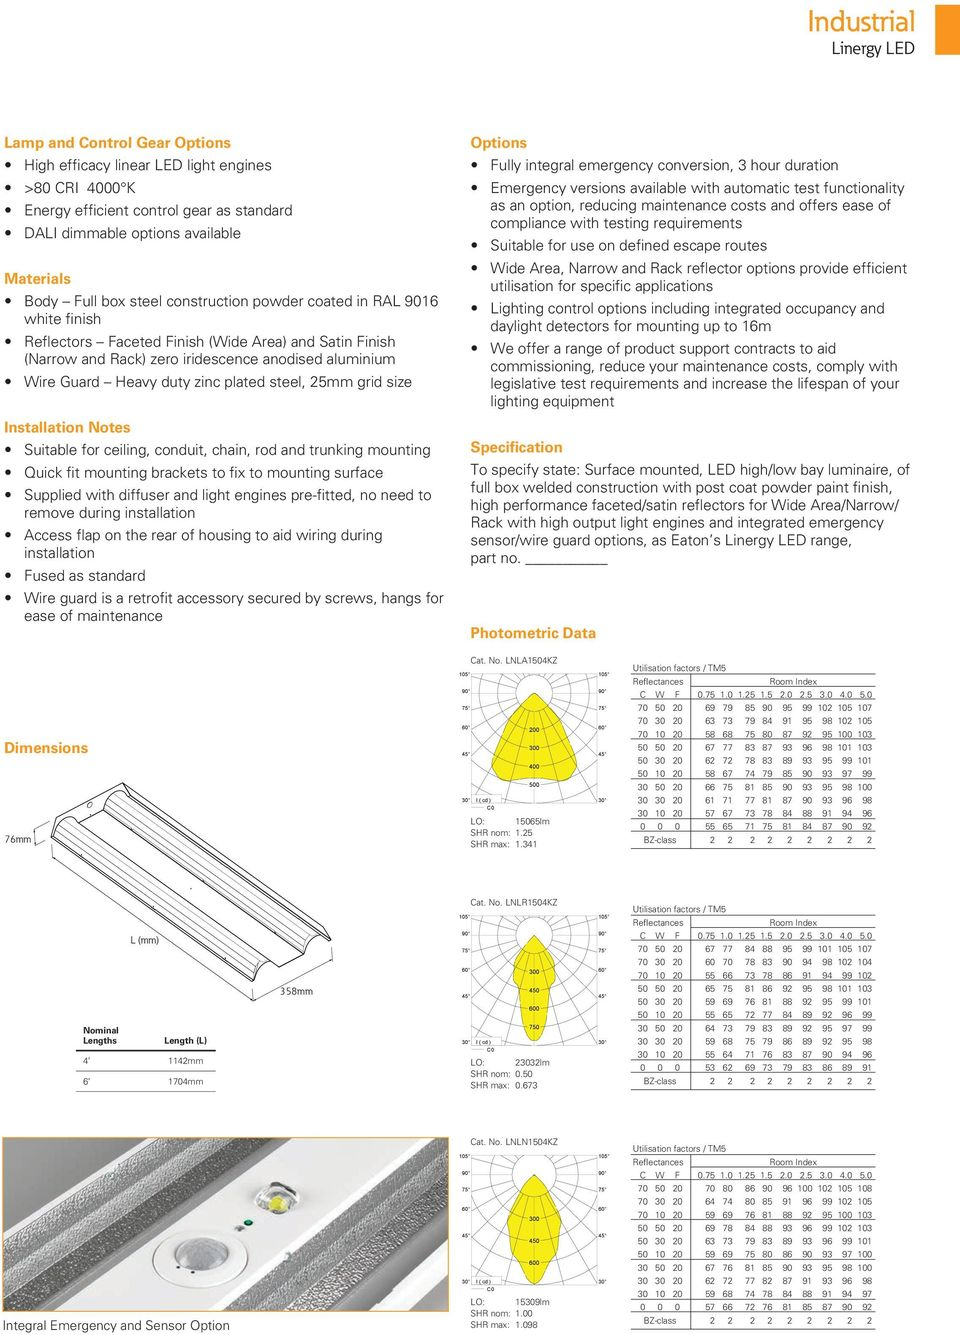 steel, 25mm grid size Installation Notes Suitable for ceiling, conduit, chain, rod and trunking mounting Quick fit mounting brackets to fix to mounting surface Supplied with diffuser and light